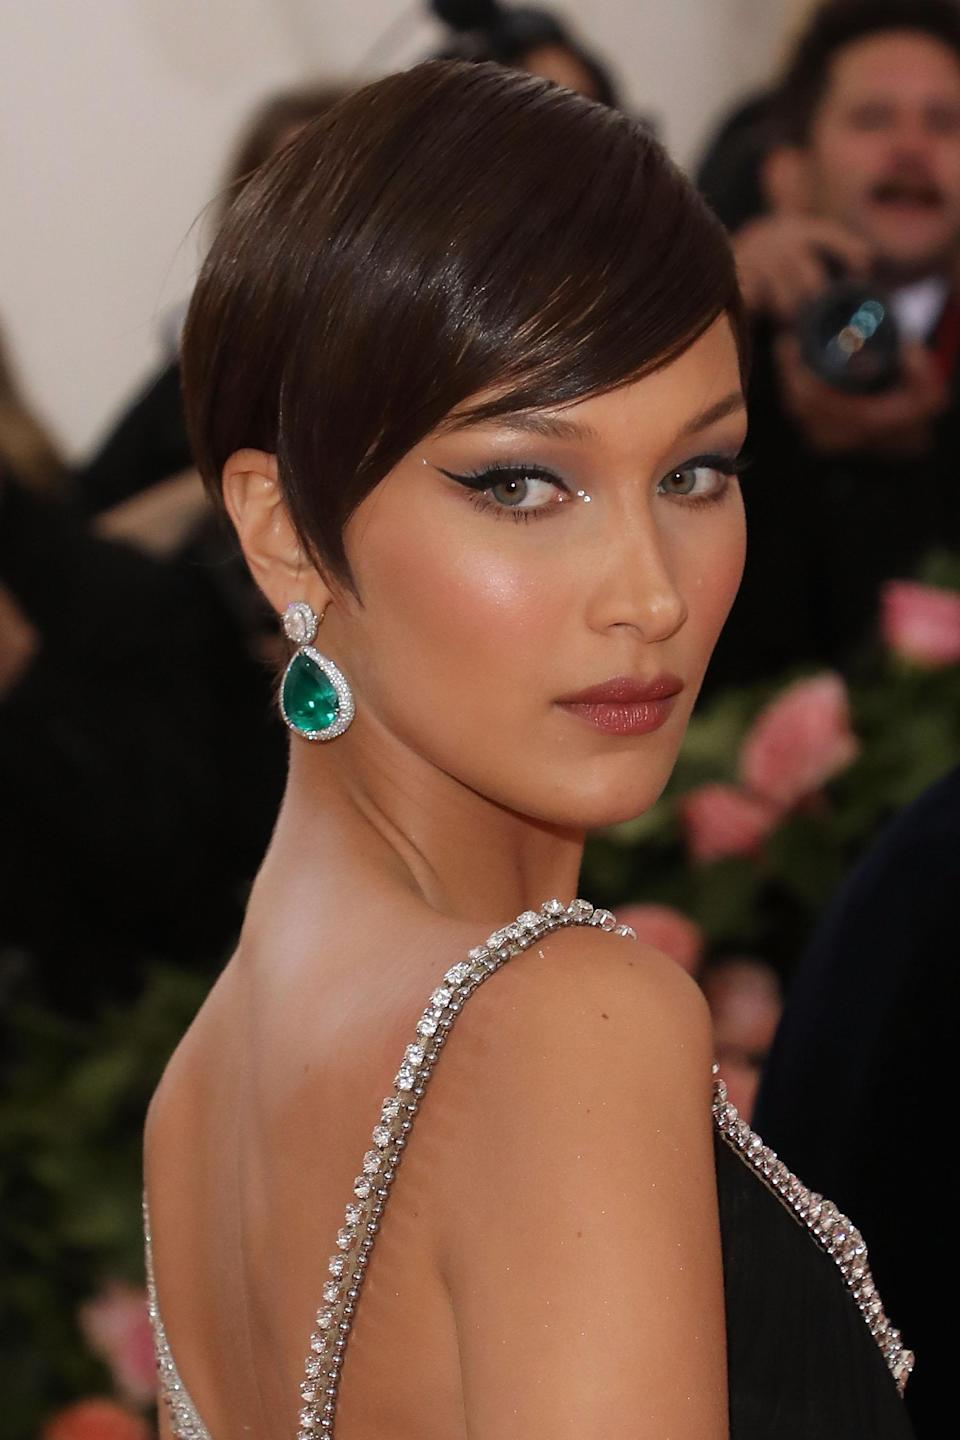 While Hadid's Met Gala cut was just a wig, her swooping bangs are still a great reference to bring to your hairdresser.